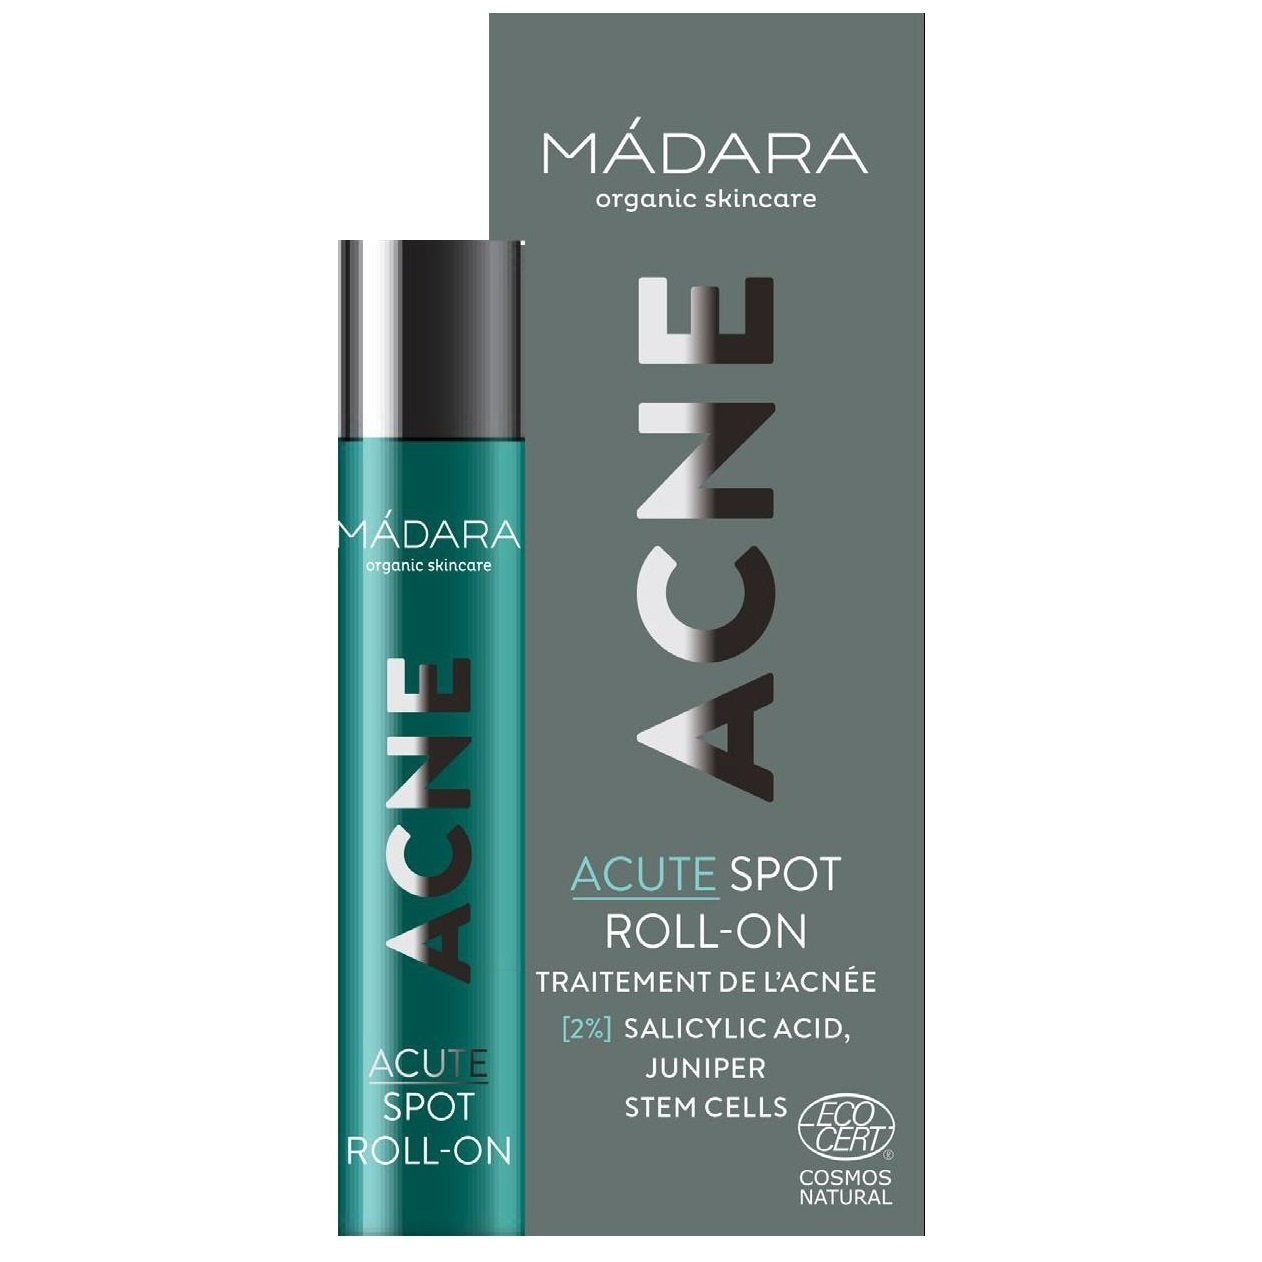 ACNE Spot Roll-on Madara